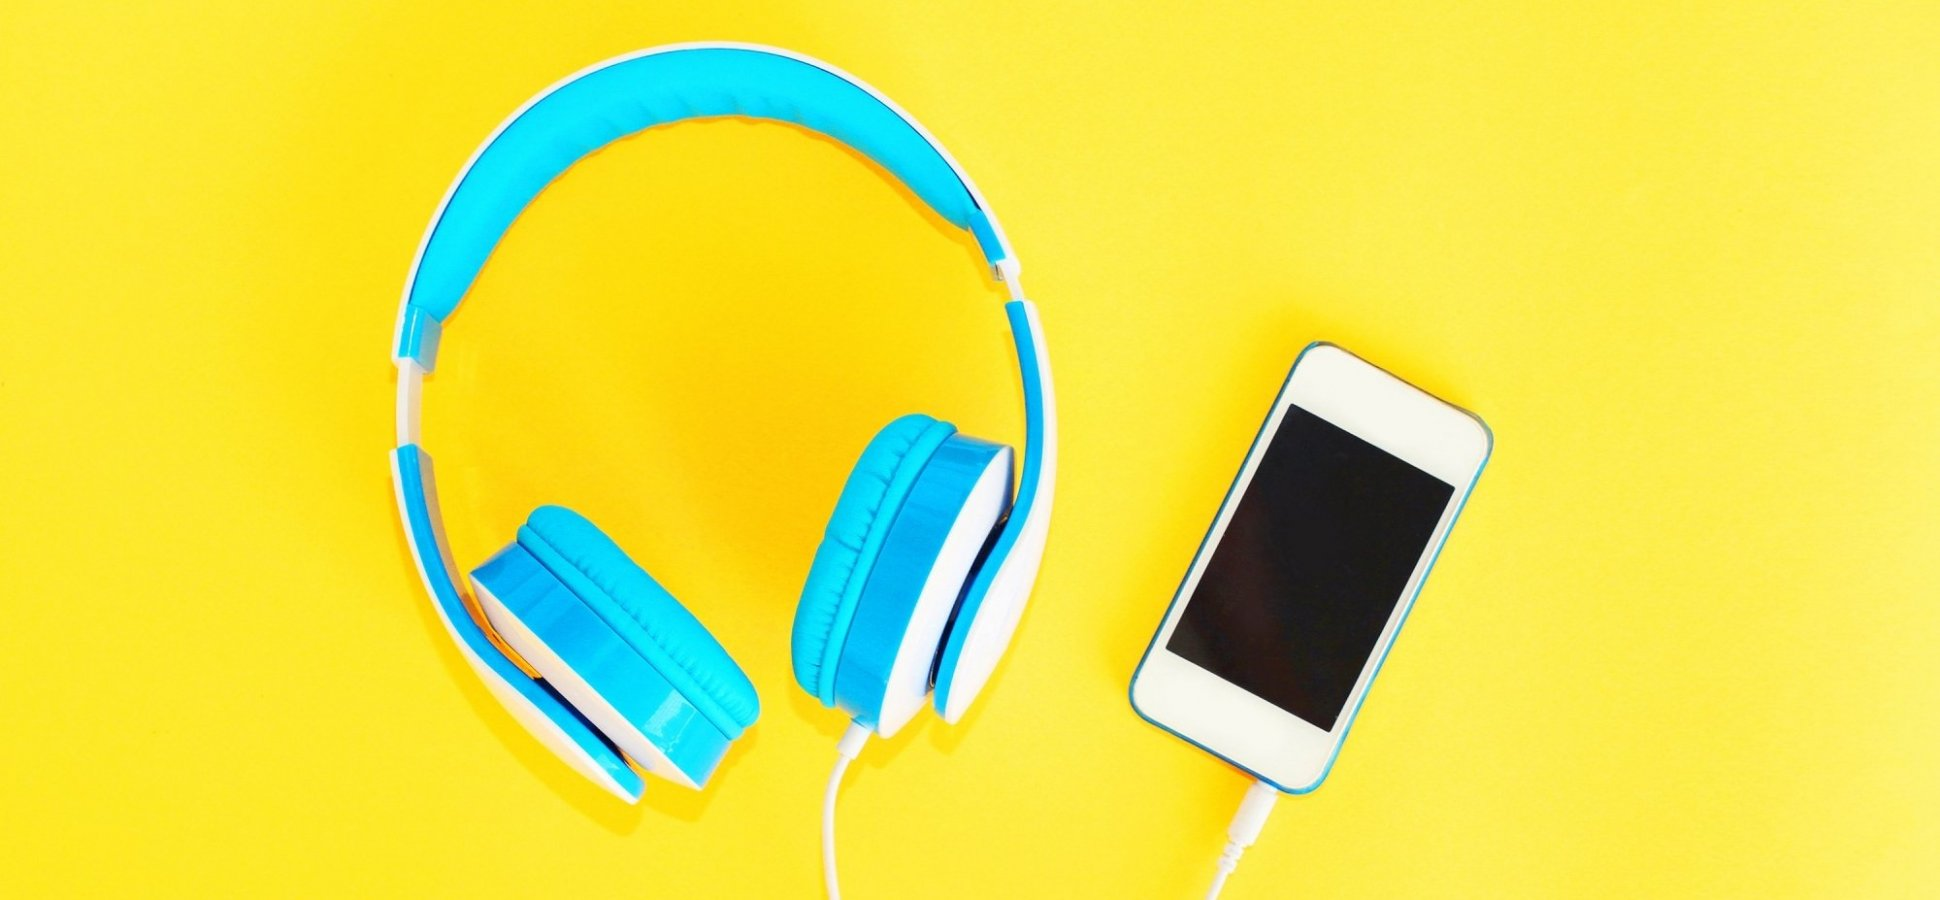 Want to Start a Side Hustle? 9 Great Podcasts to Help You Launch Your Own Business